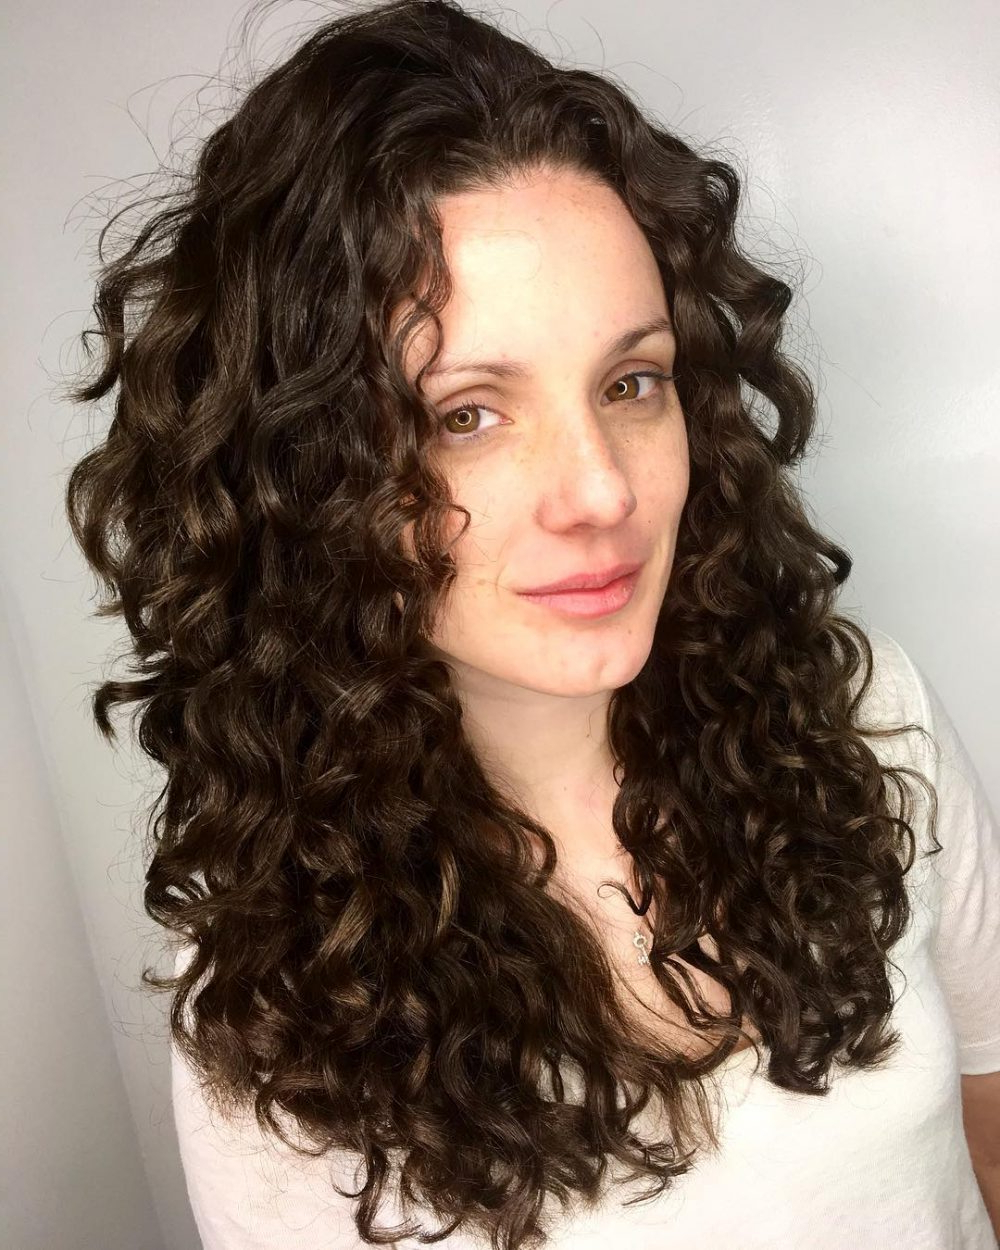 Top 23 Long Curly Hair Ideas Of 2019 For Preferred Long Curly Layers Hairstyles (View 13 of 20)